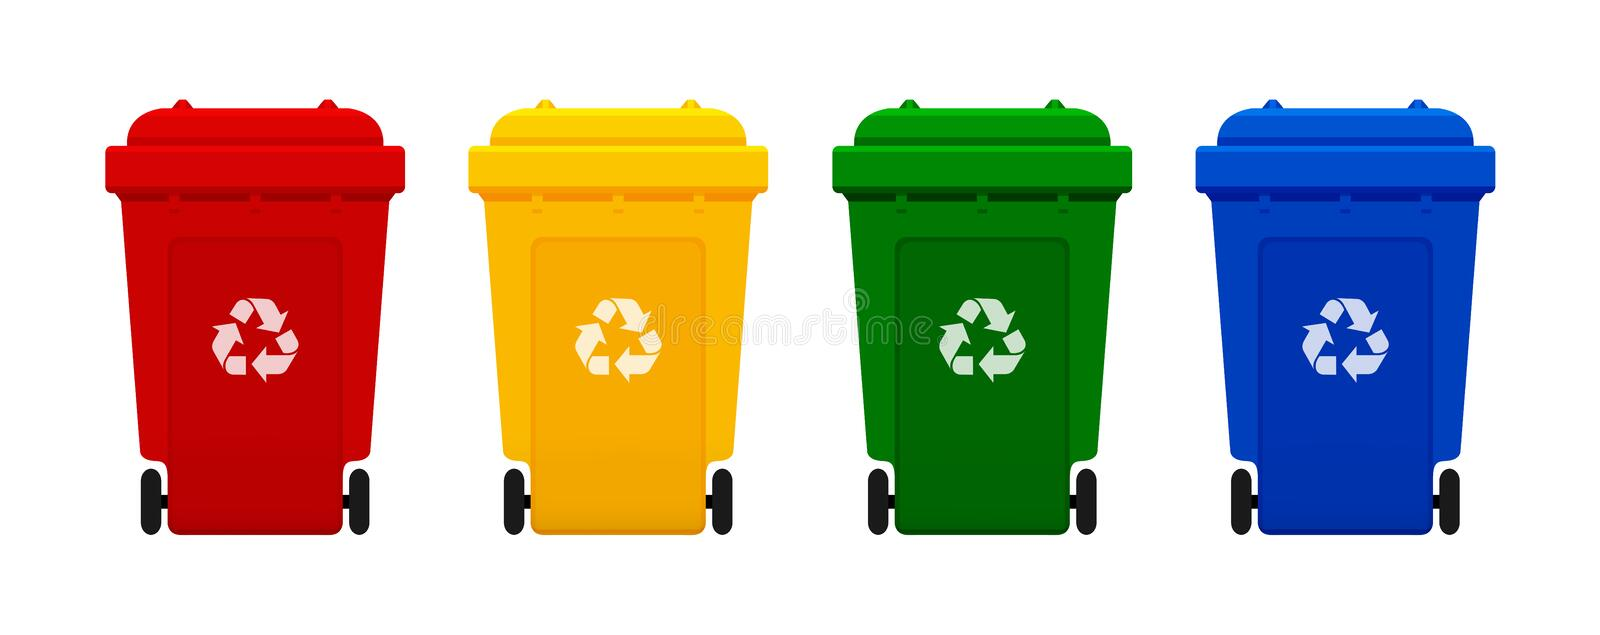 Bin plastic, four colorful recycle bins isolated on white background, red, yellow, green and blue bins with recycle waste symbol royalty free illustration